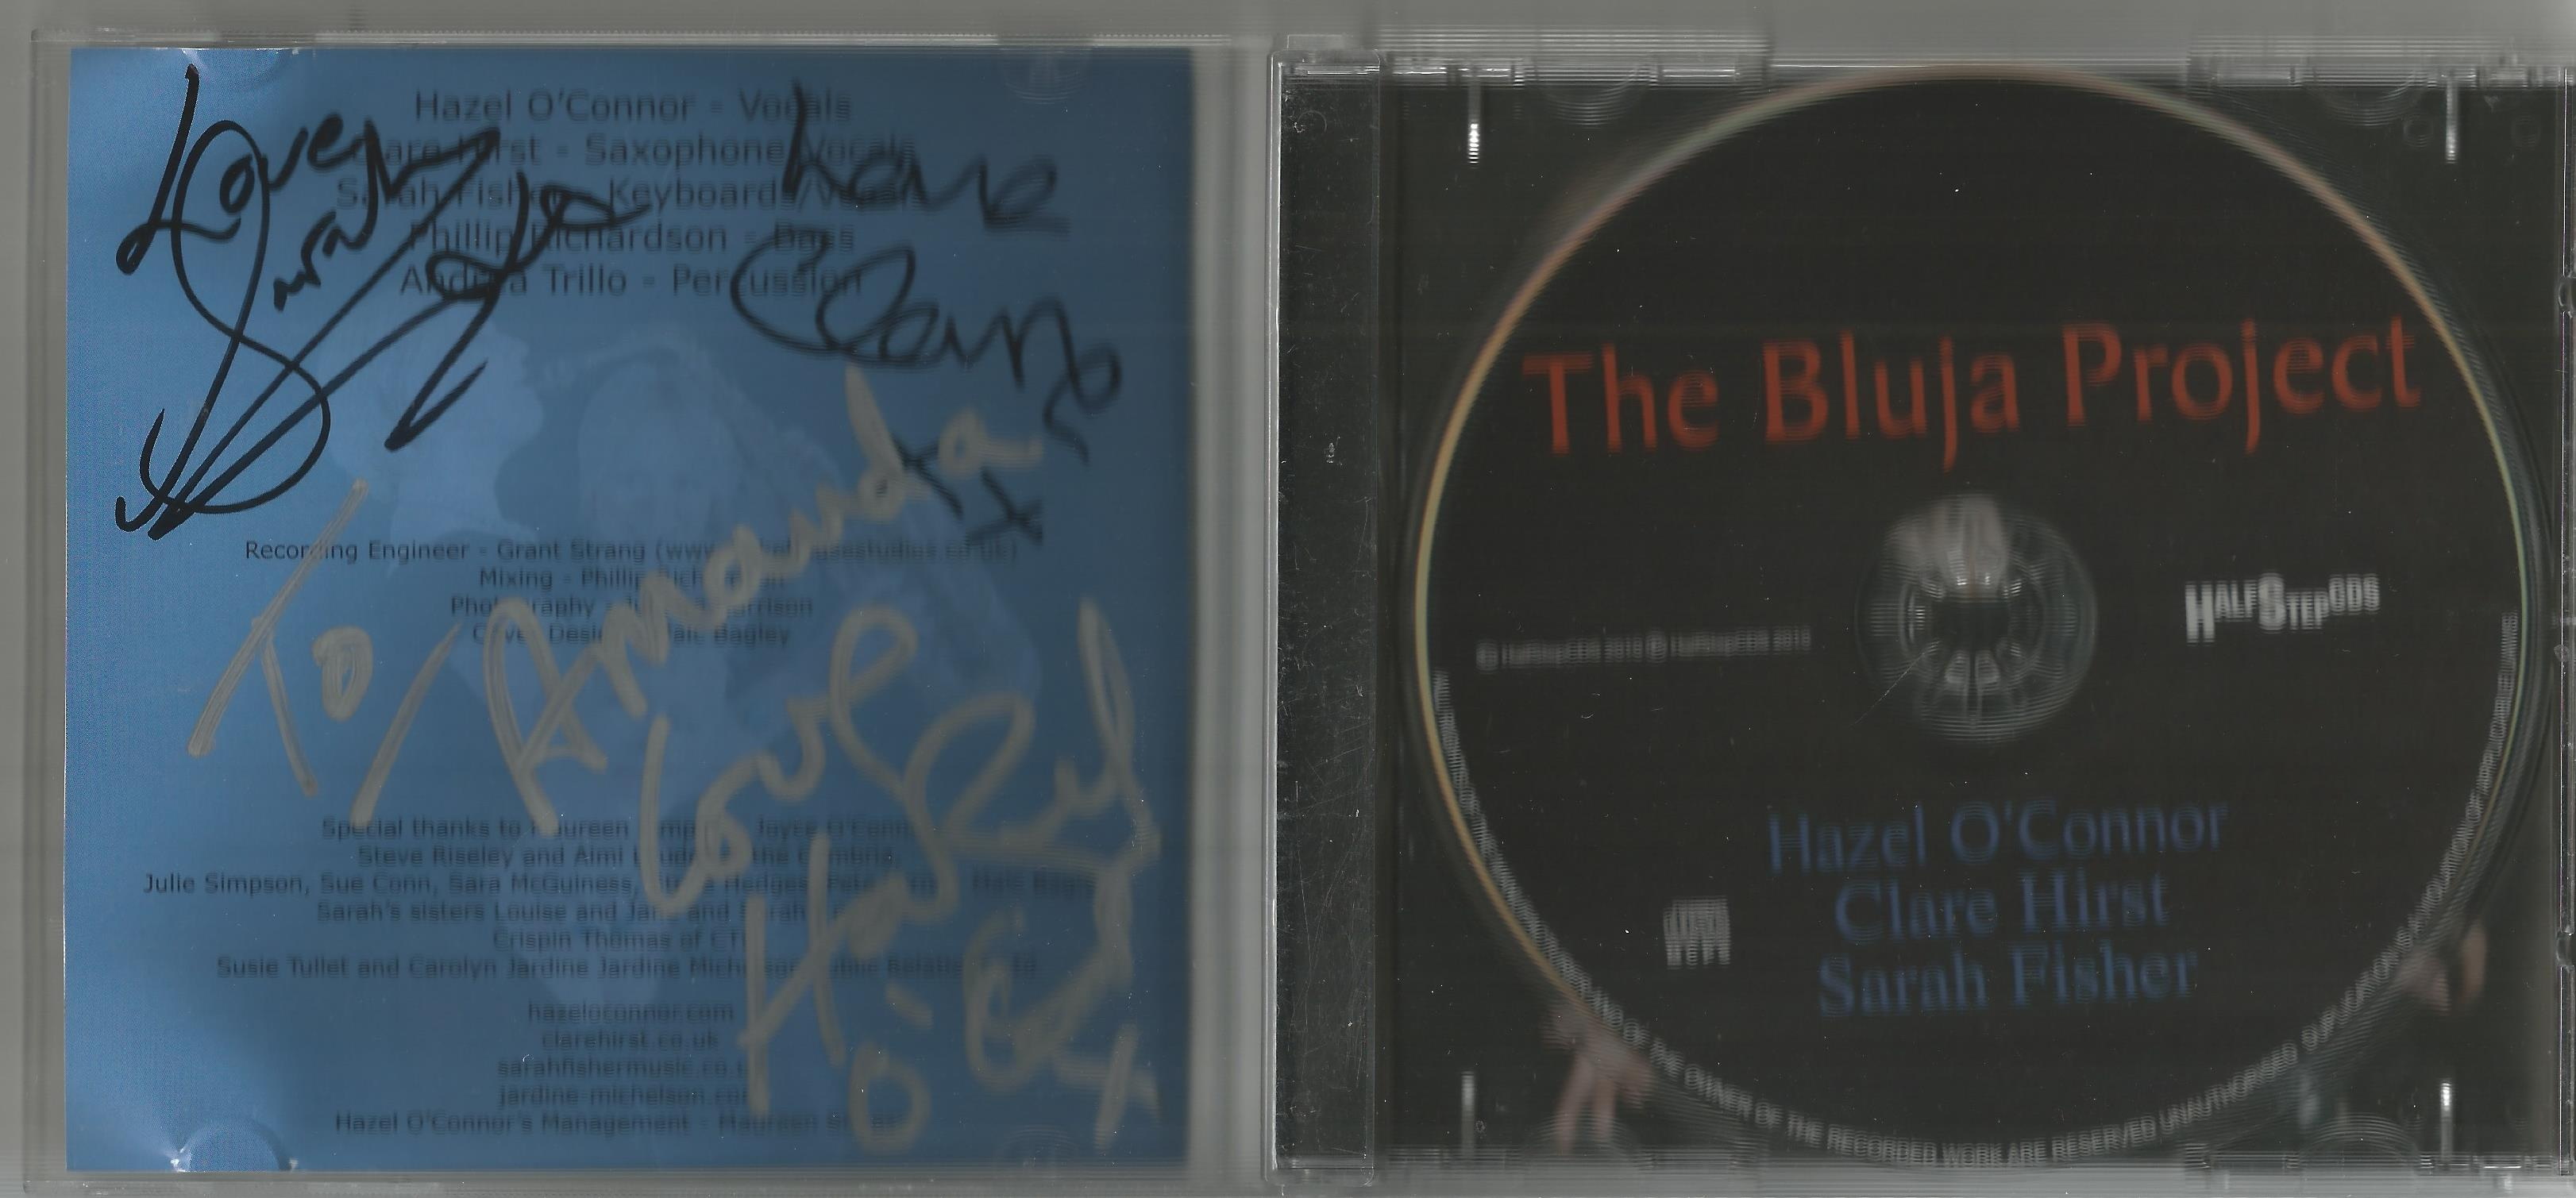 6 Signed CDs Including Michael Graham (Inspirations) Disc Included, Hazel O'Connor (The Bluja - Image 4 of 6